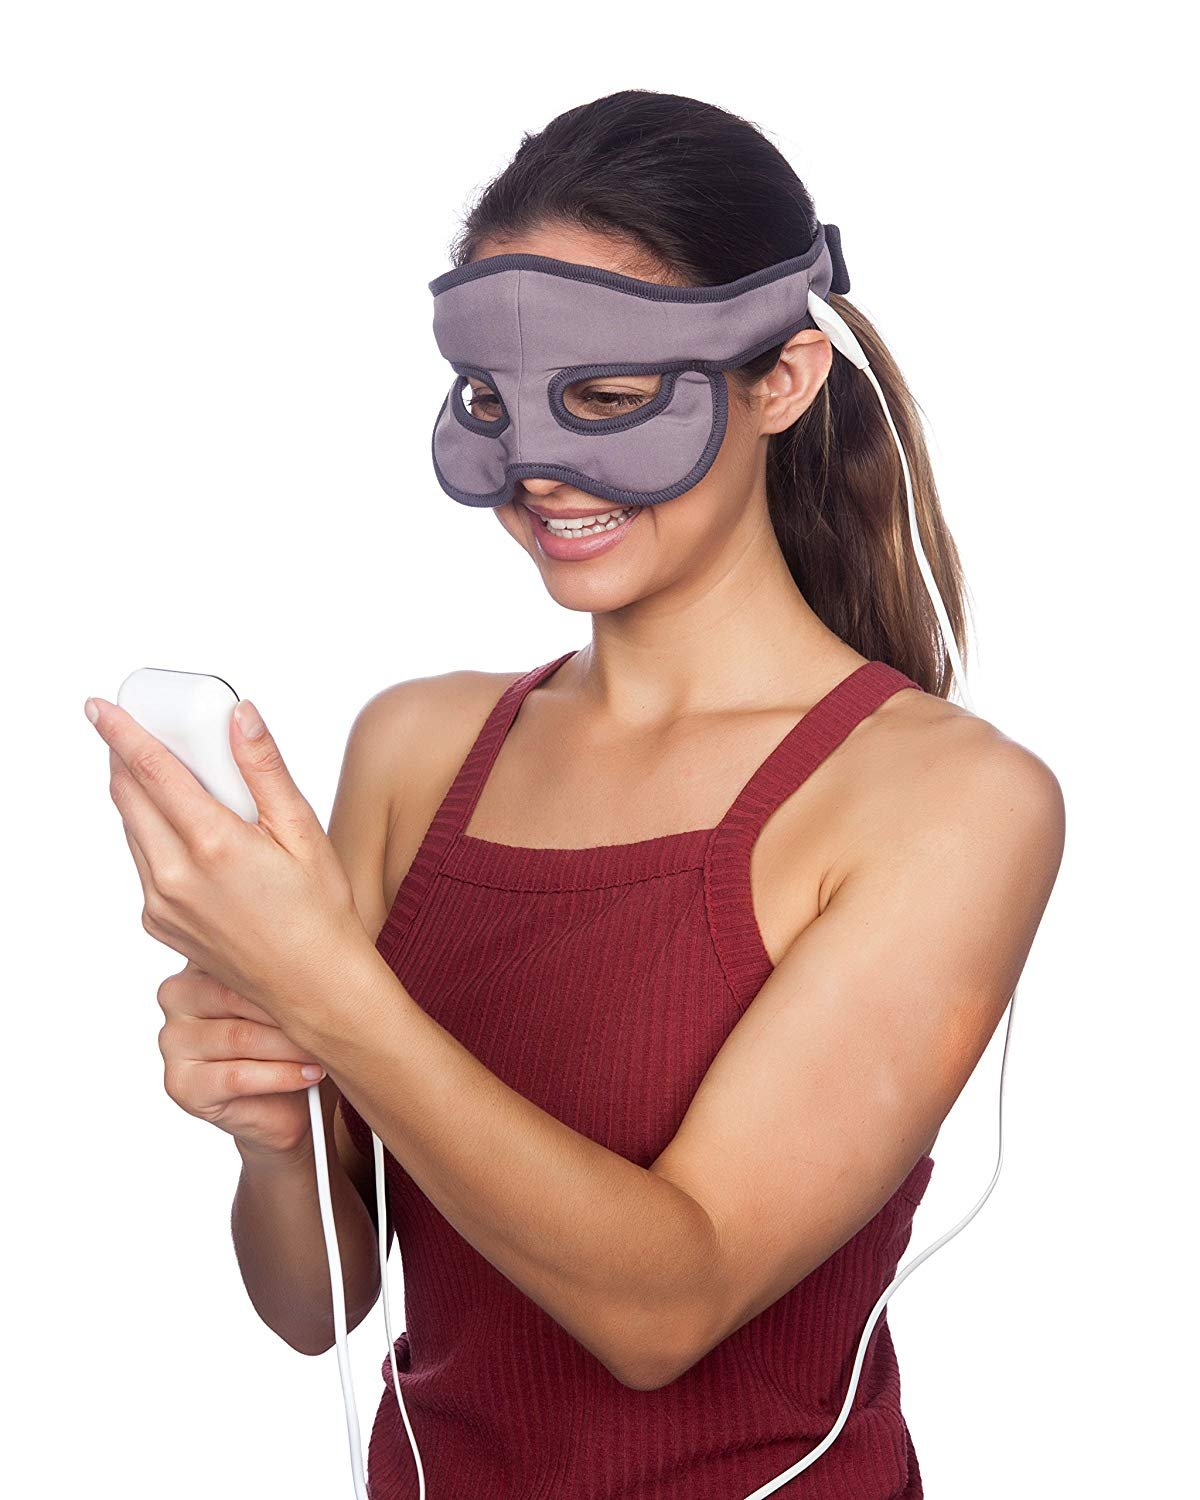 SNIFF RELIEF PREMIUM HEATED SINUS MASK | REUSABLE SINUS AND CONGESTION RELIEF | FDA-APPROVED FOR RELIABLE PERFORMANCE EVERY DAY | 9.8 FT POWER CORD | 105-140 FAHRENHEIT (40-60C) TEMPERATURE RANGE